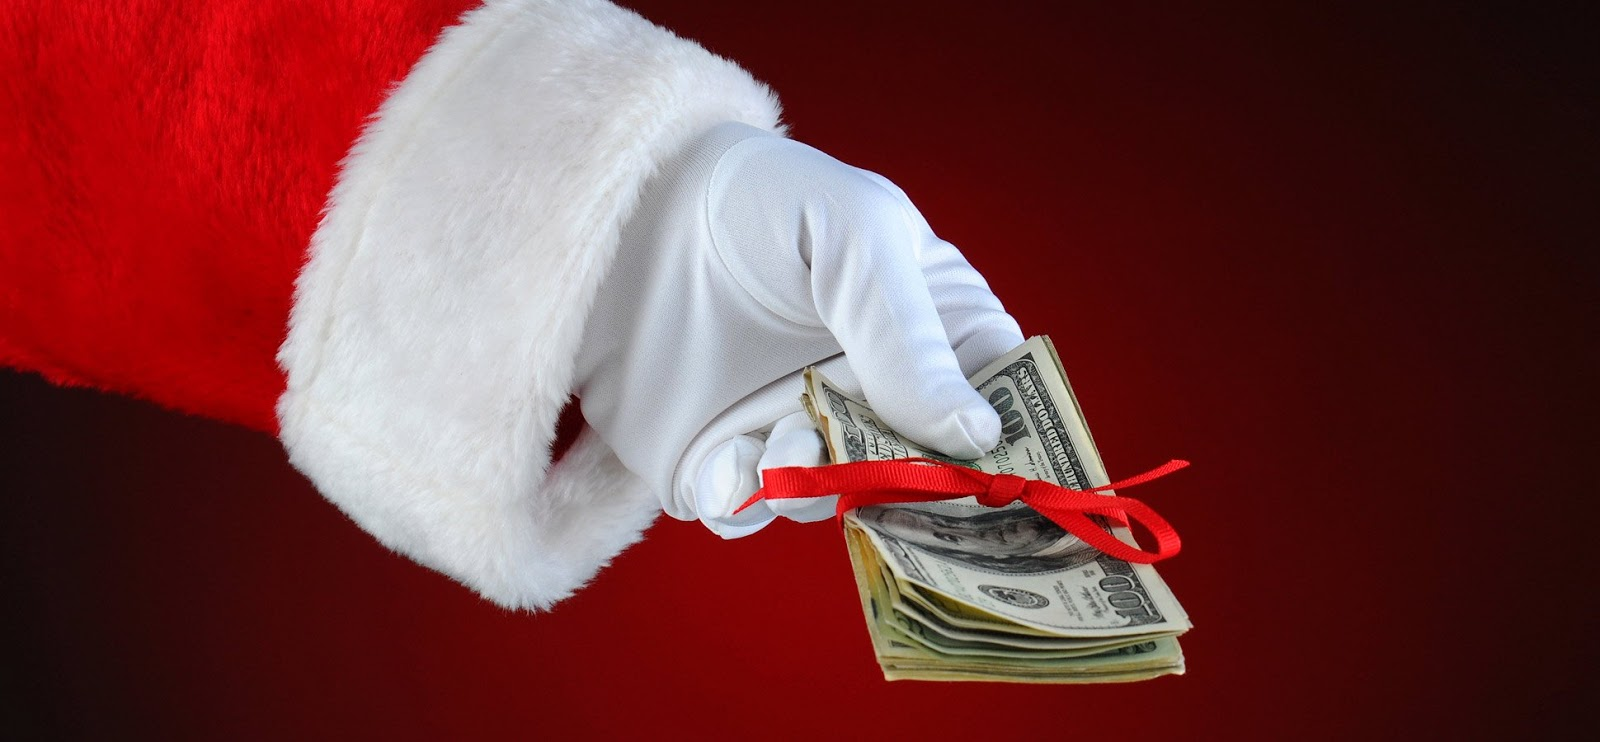 US Oil and Gas Company Gives $100,000 Christmas Bonus to Employees ...